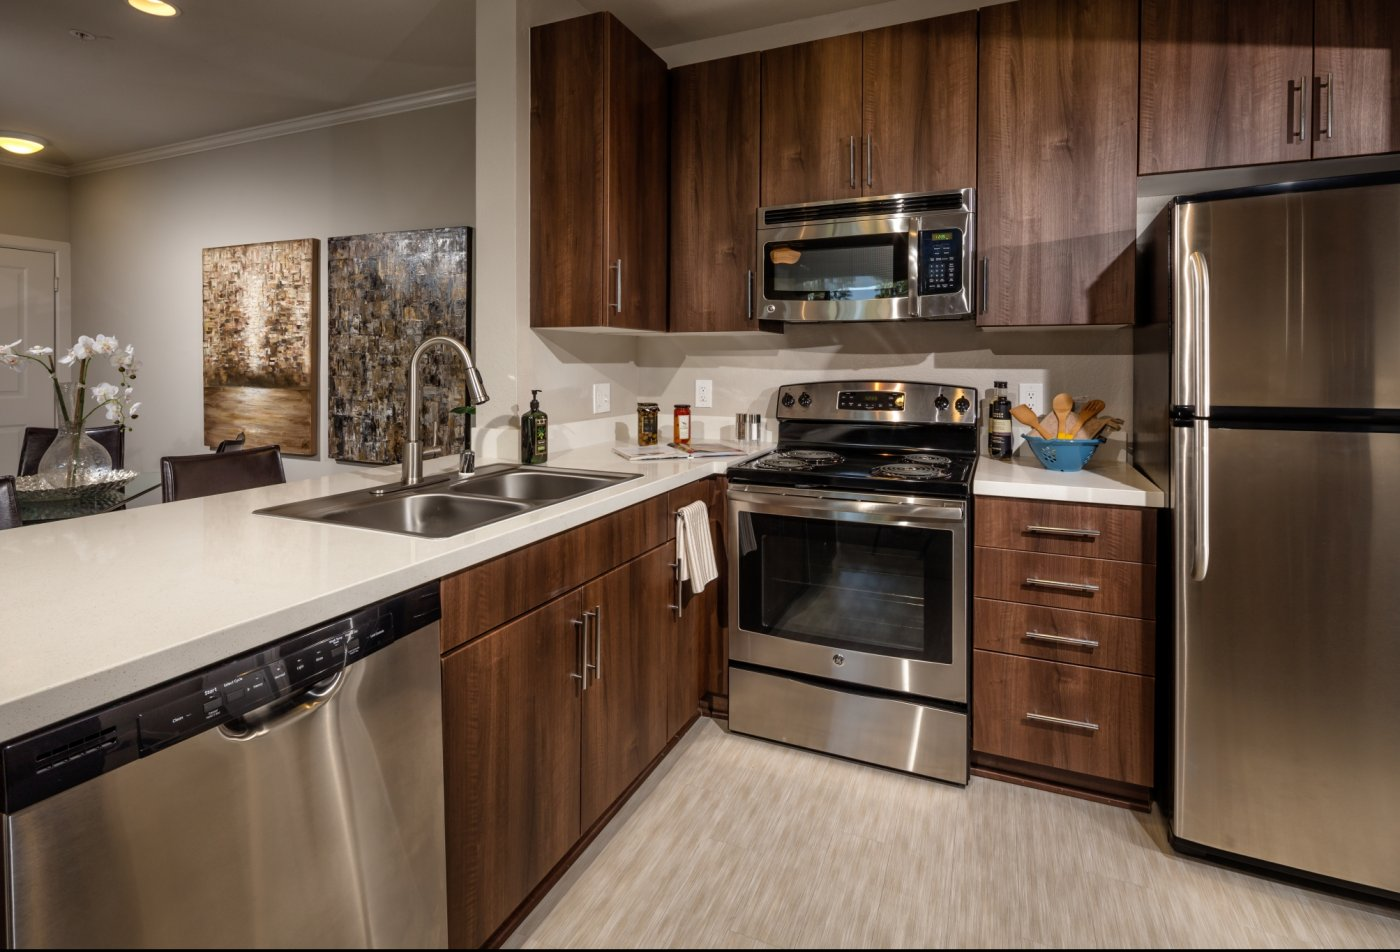 State-of-the-Art Kitchen | New Apartments In Irvine | Avila at Rancho Santa Margarita